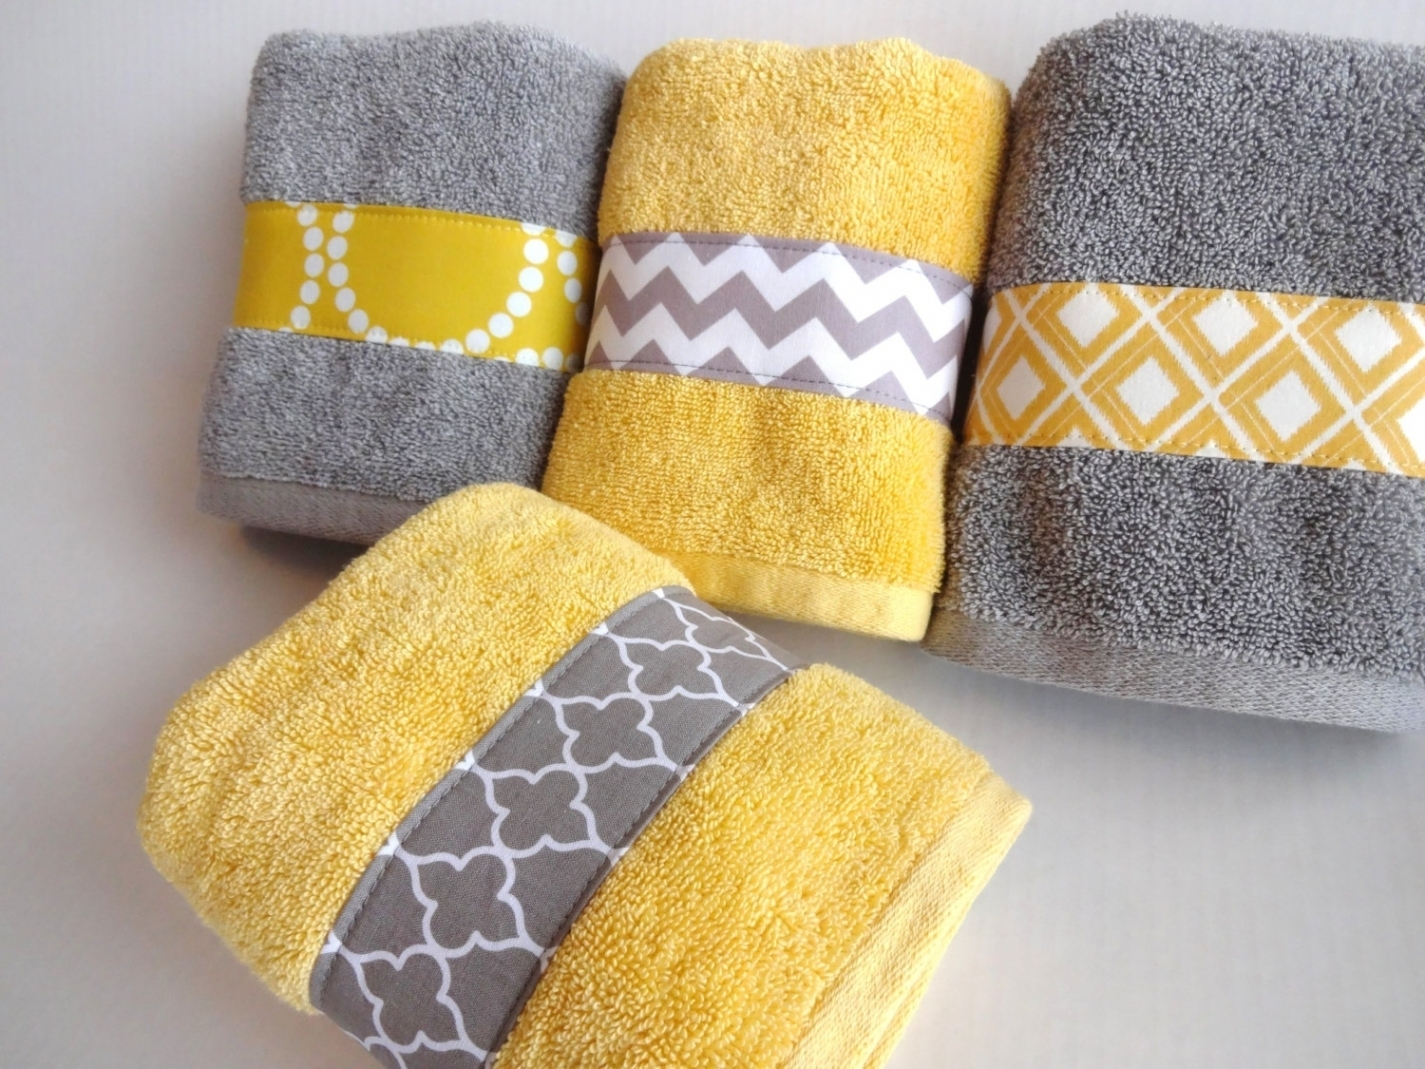 Permalink to Yellow Bath Rugs And Towels